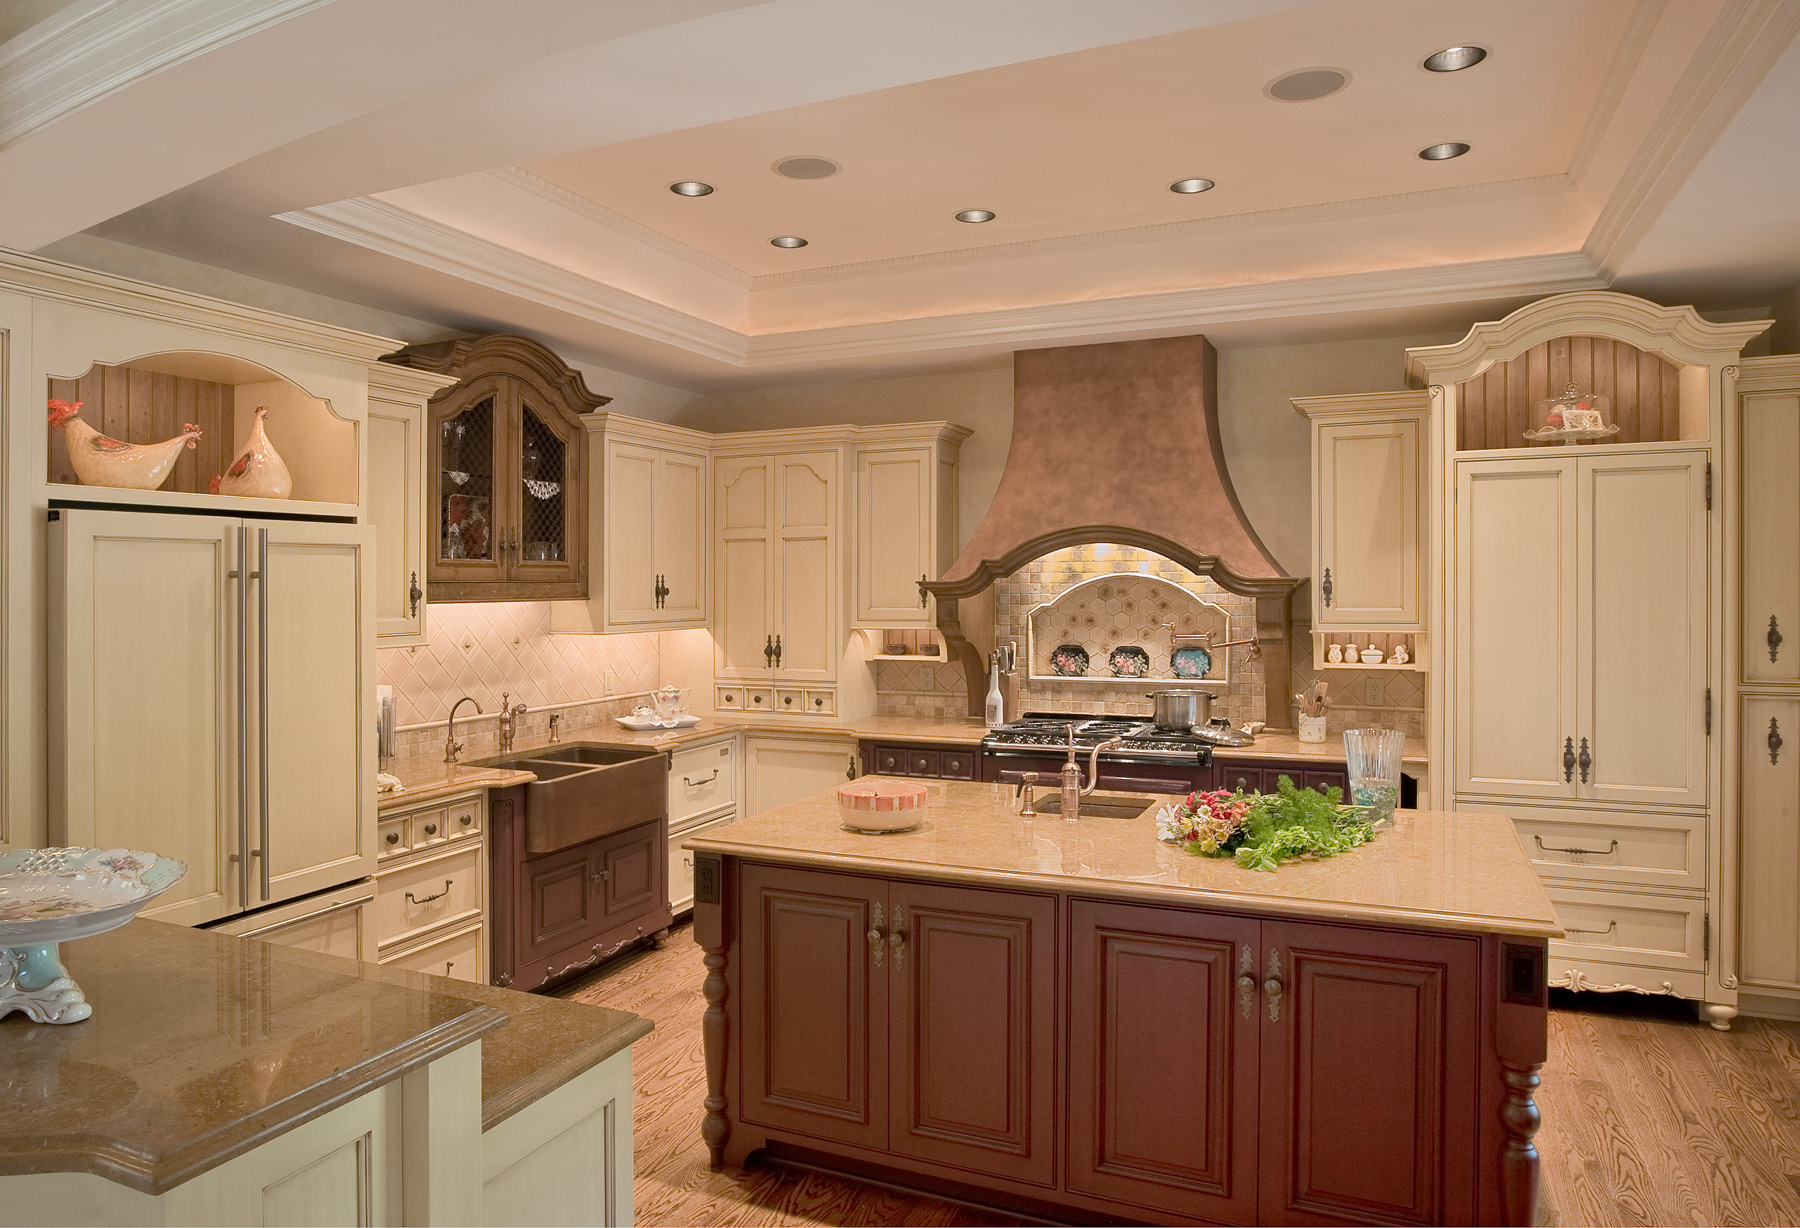 French Inspired Kitchen - Colonial Craft Kitchens